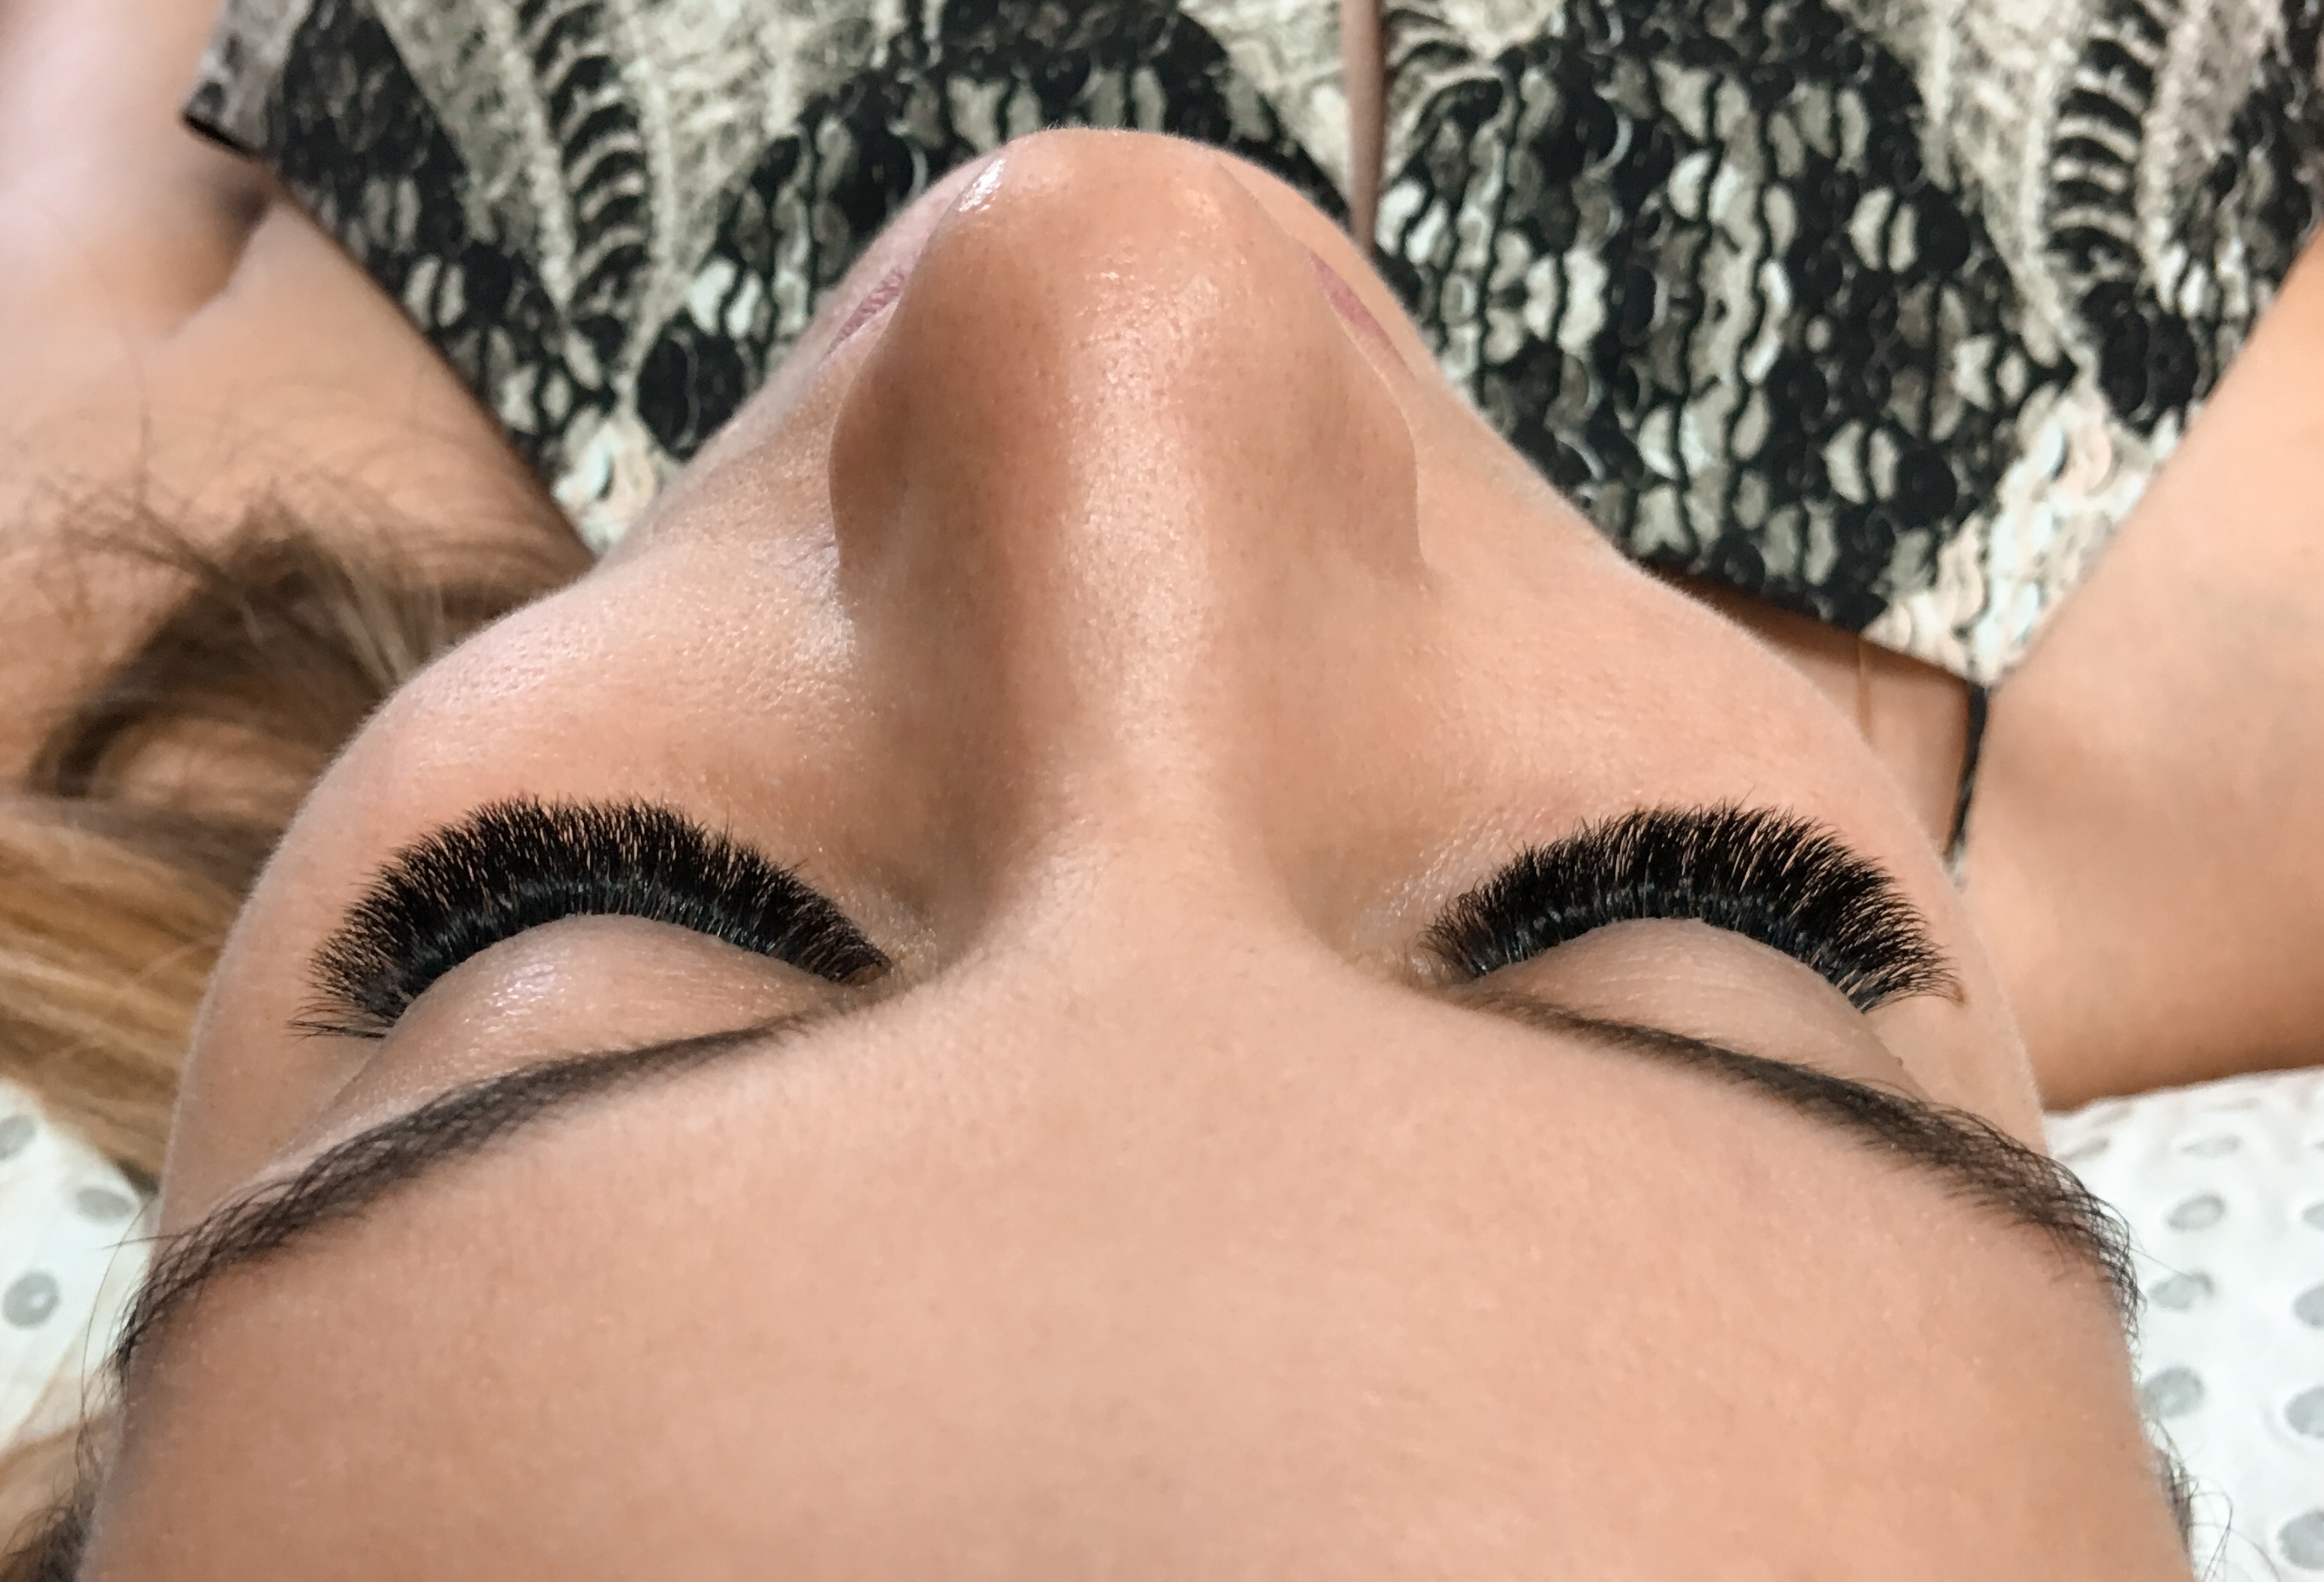 d409be6eff5 2 Day Volume Lash Mastery